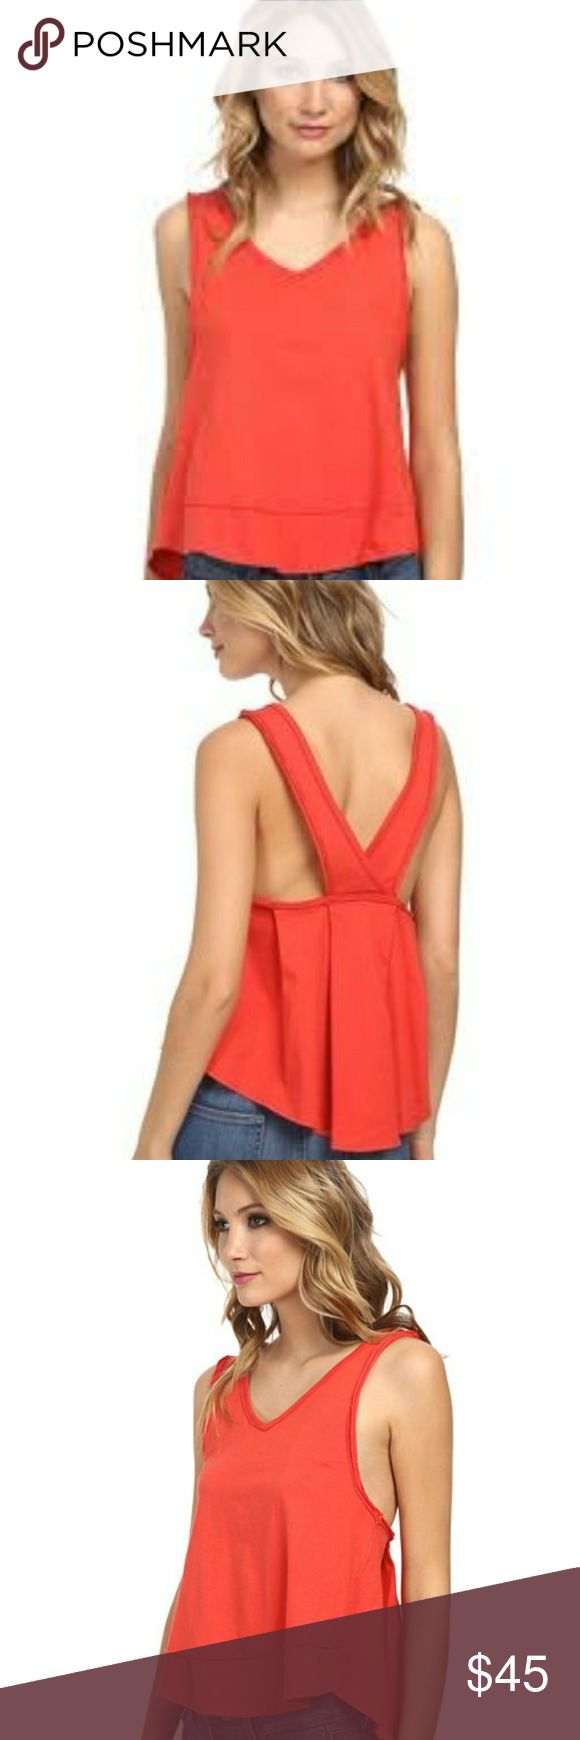 We the Free Jersey Orange/Red Tank Top Super cute tank by Free People - We the Free! I love how this hangs low on the sides and the wide straps in the back, would look super cute if worn with a bandeau!   / 100% Cotton Free People Tops Tank Tops